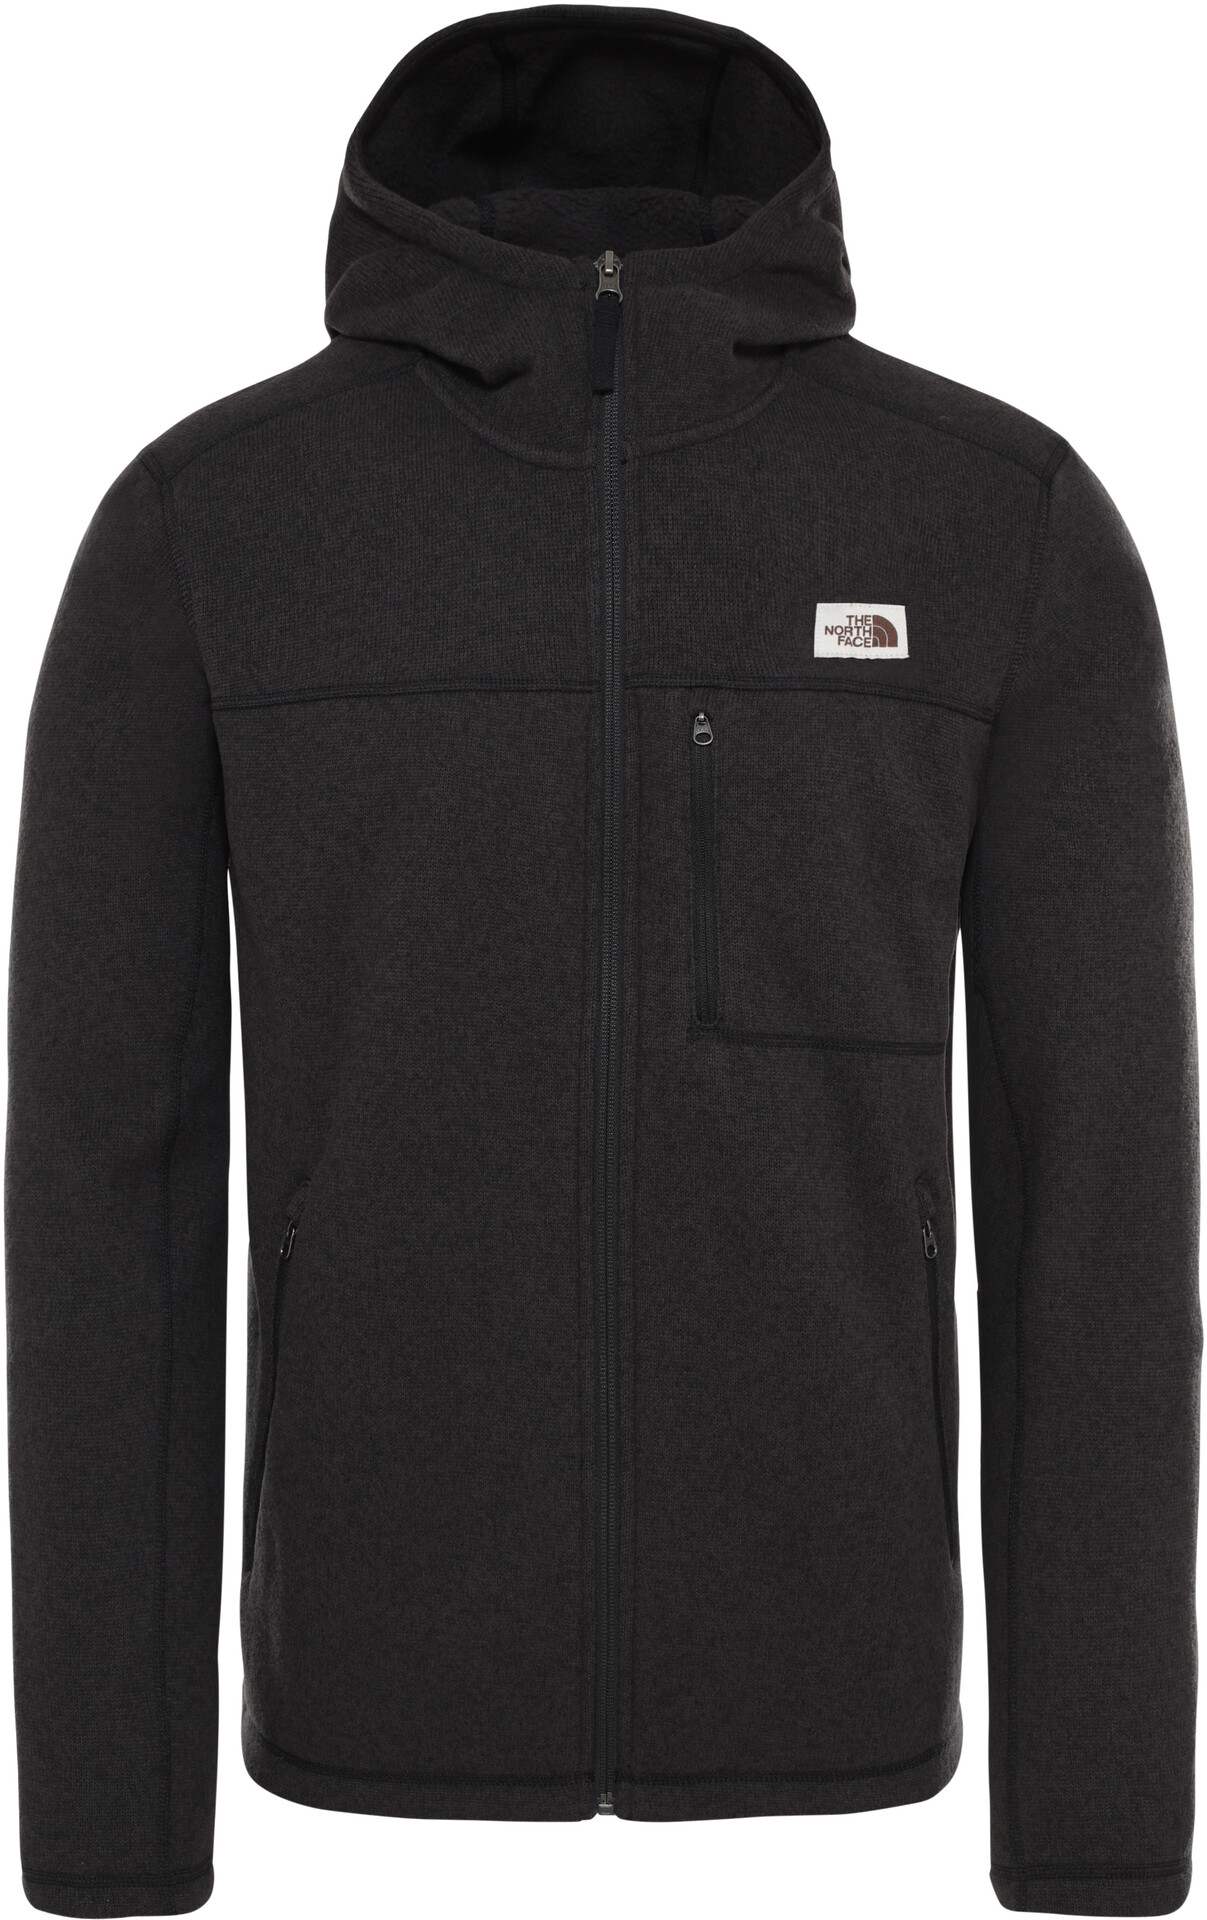 The North Face Gordon Lyons Hoodie Jacket Men tnf black heather